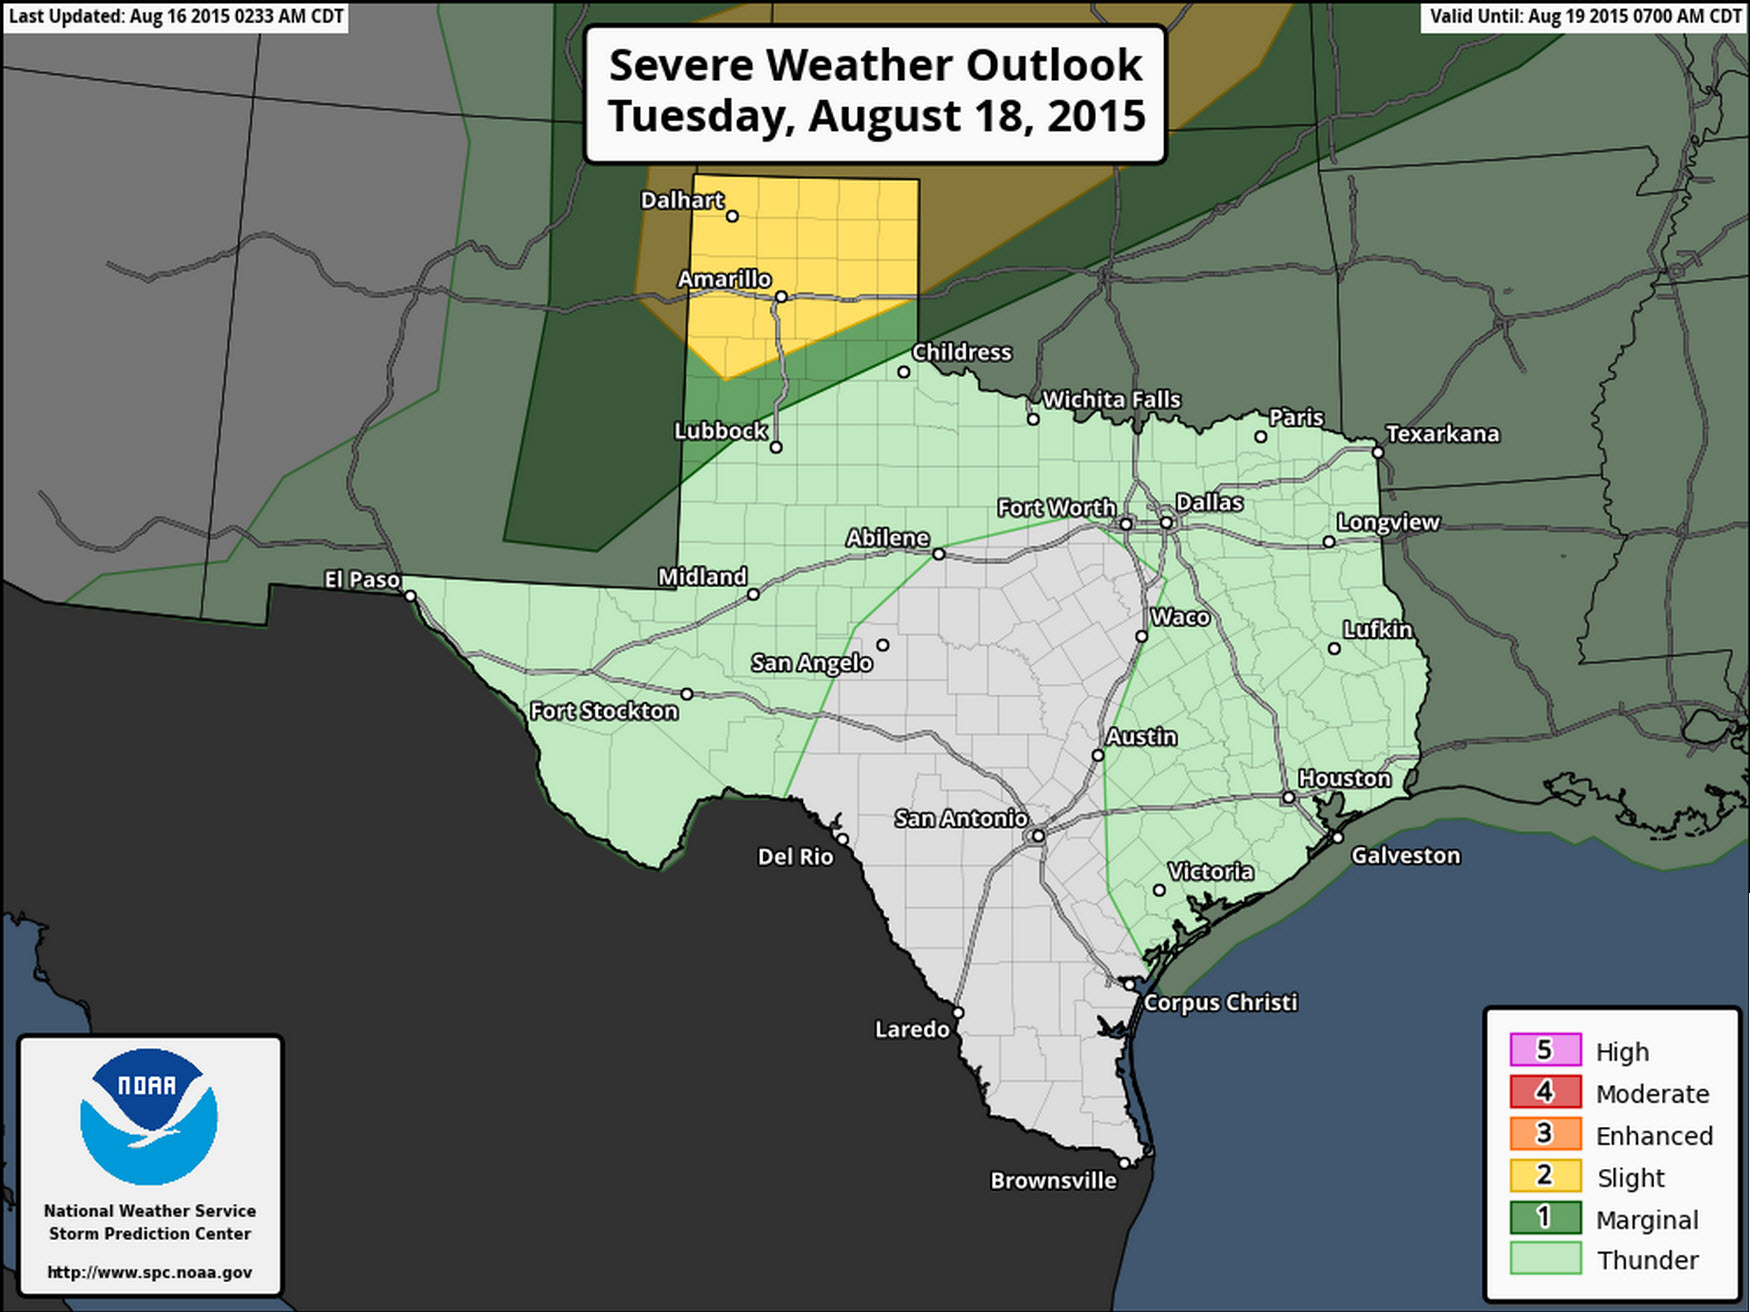 Severe Weather Outlook for Tuesday